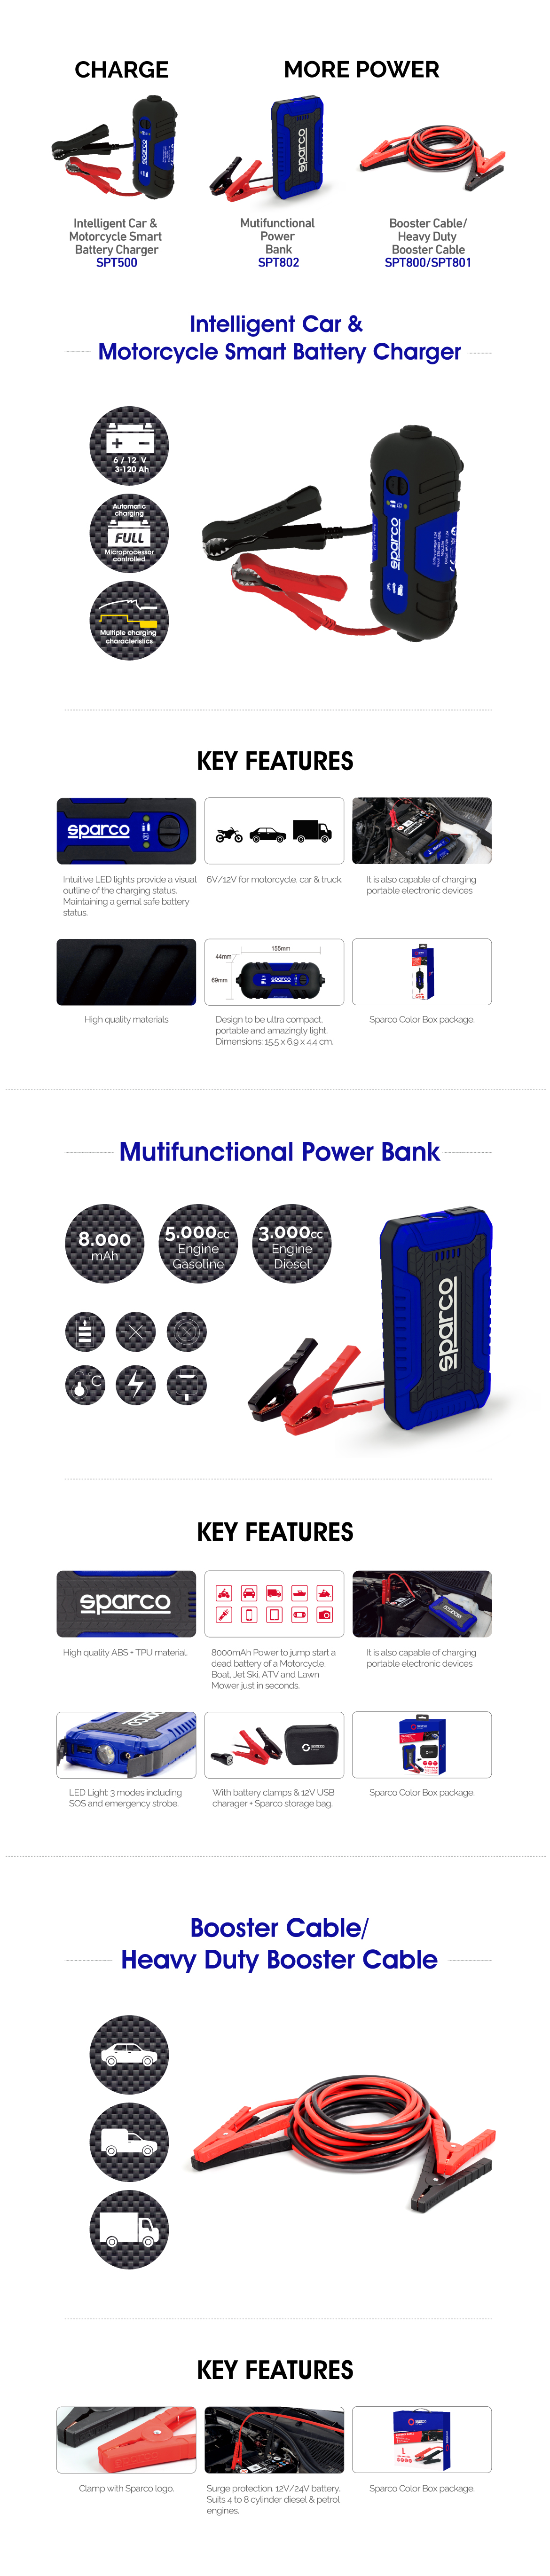 Sparco-tools